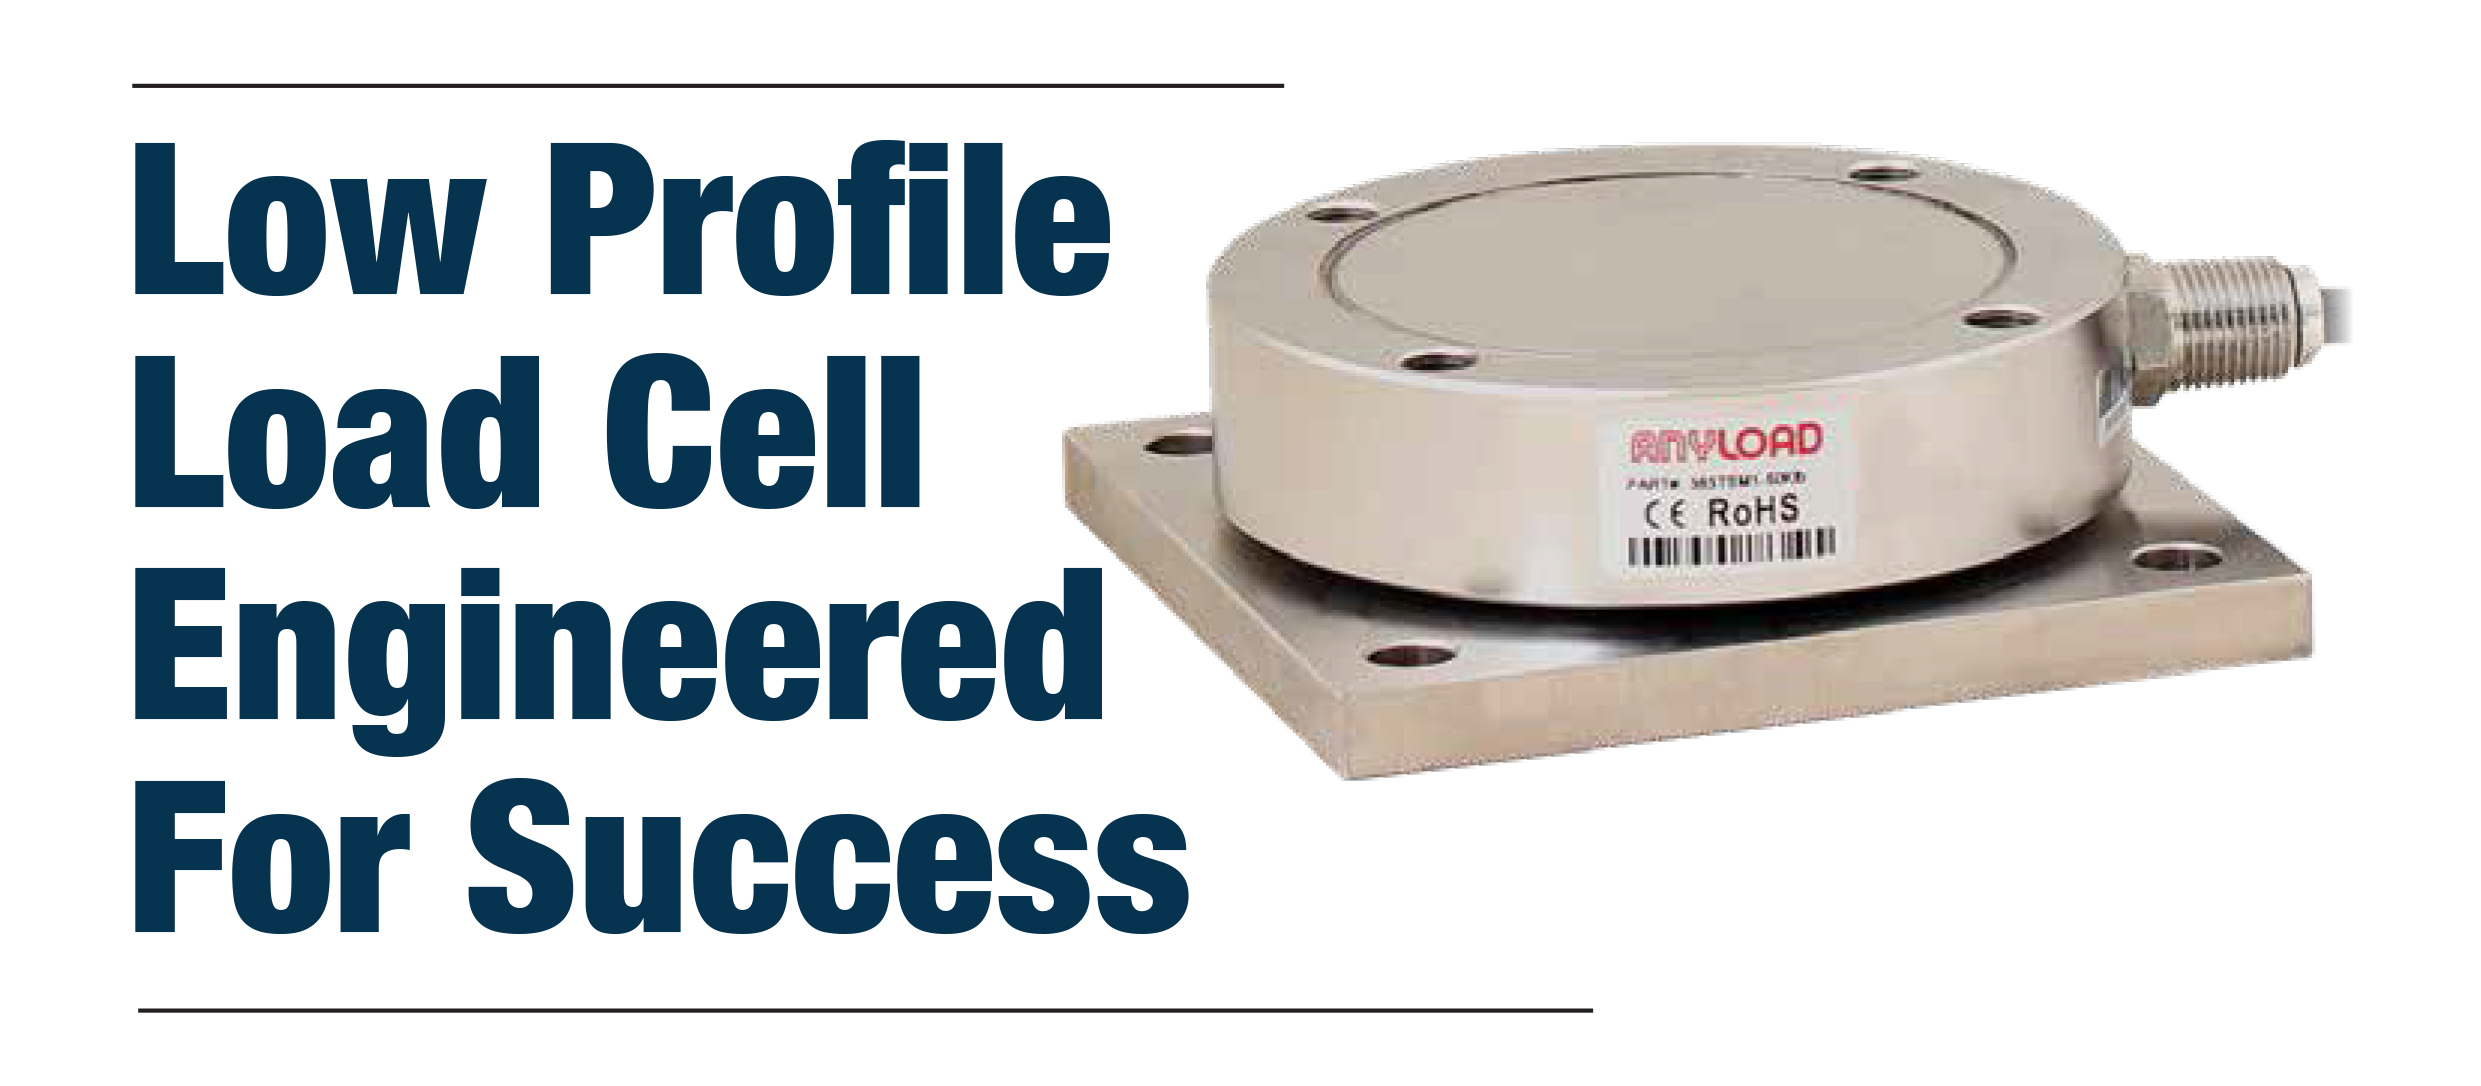 Low Profile Load Cell Engineered For Success